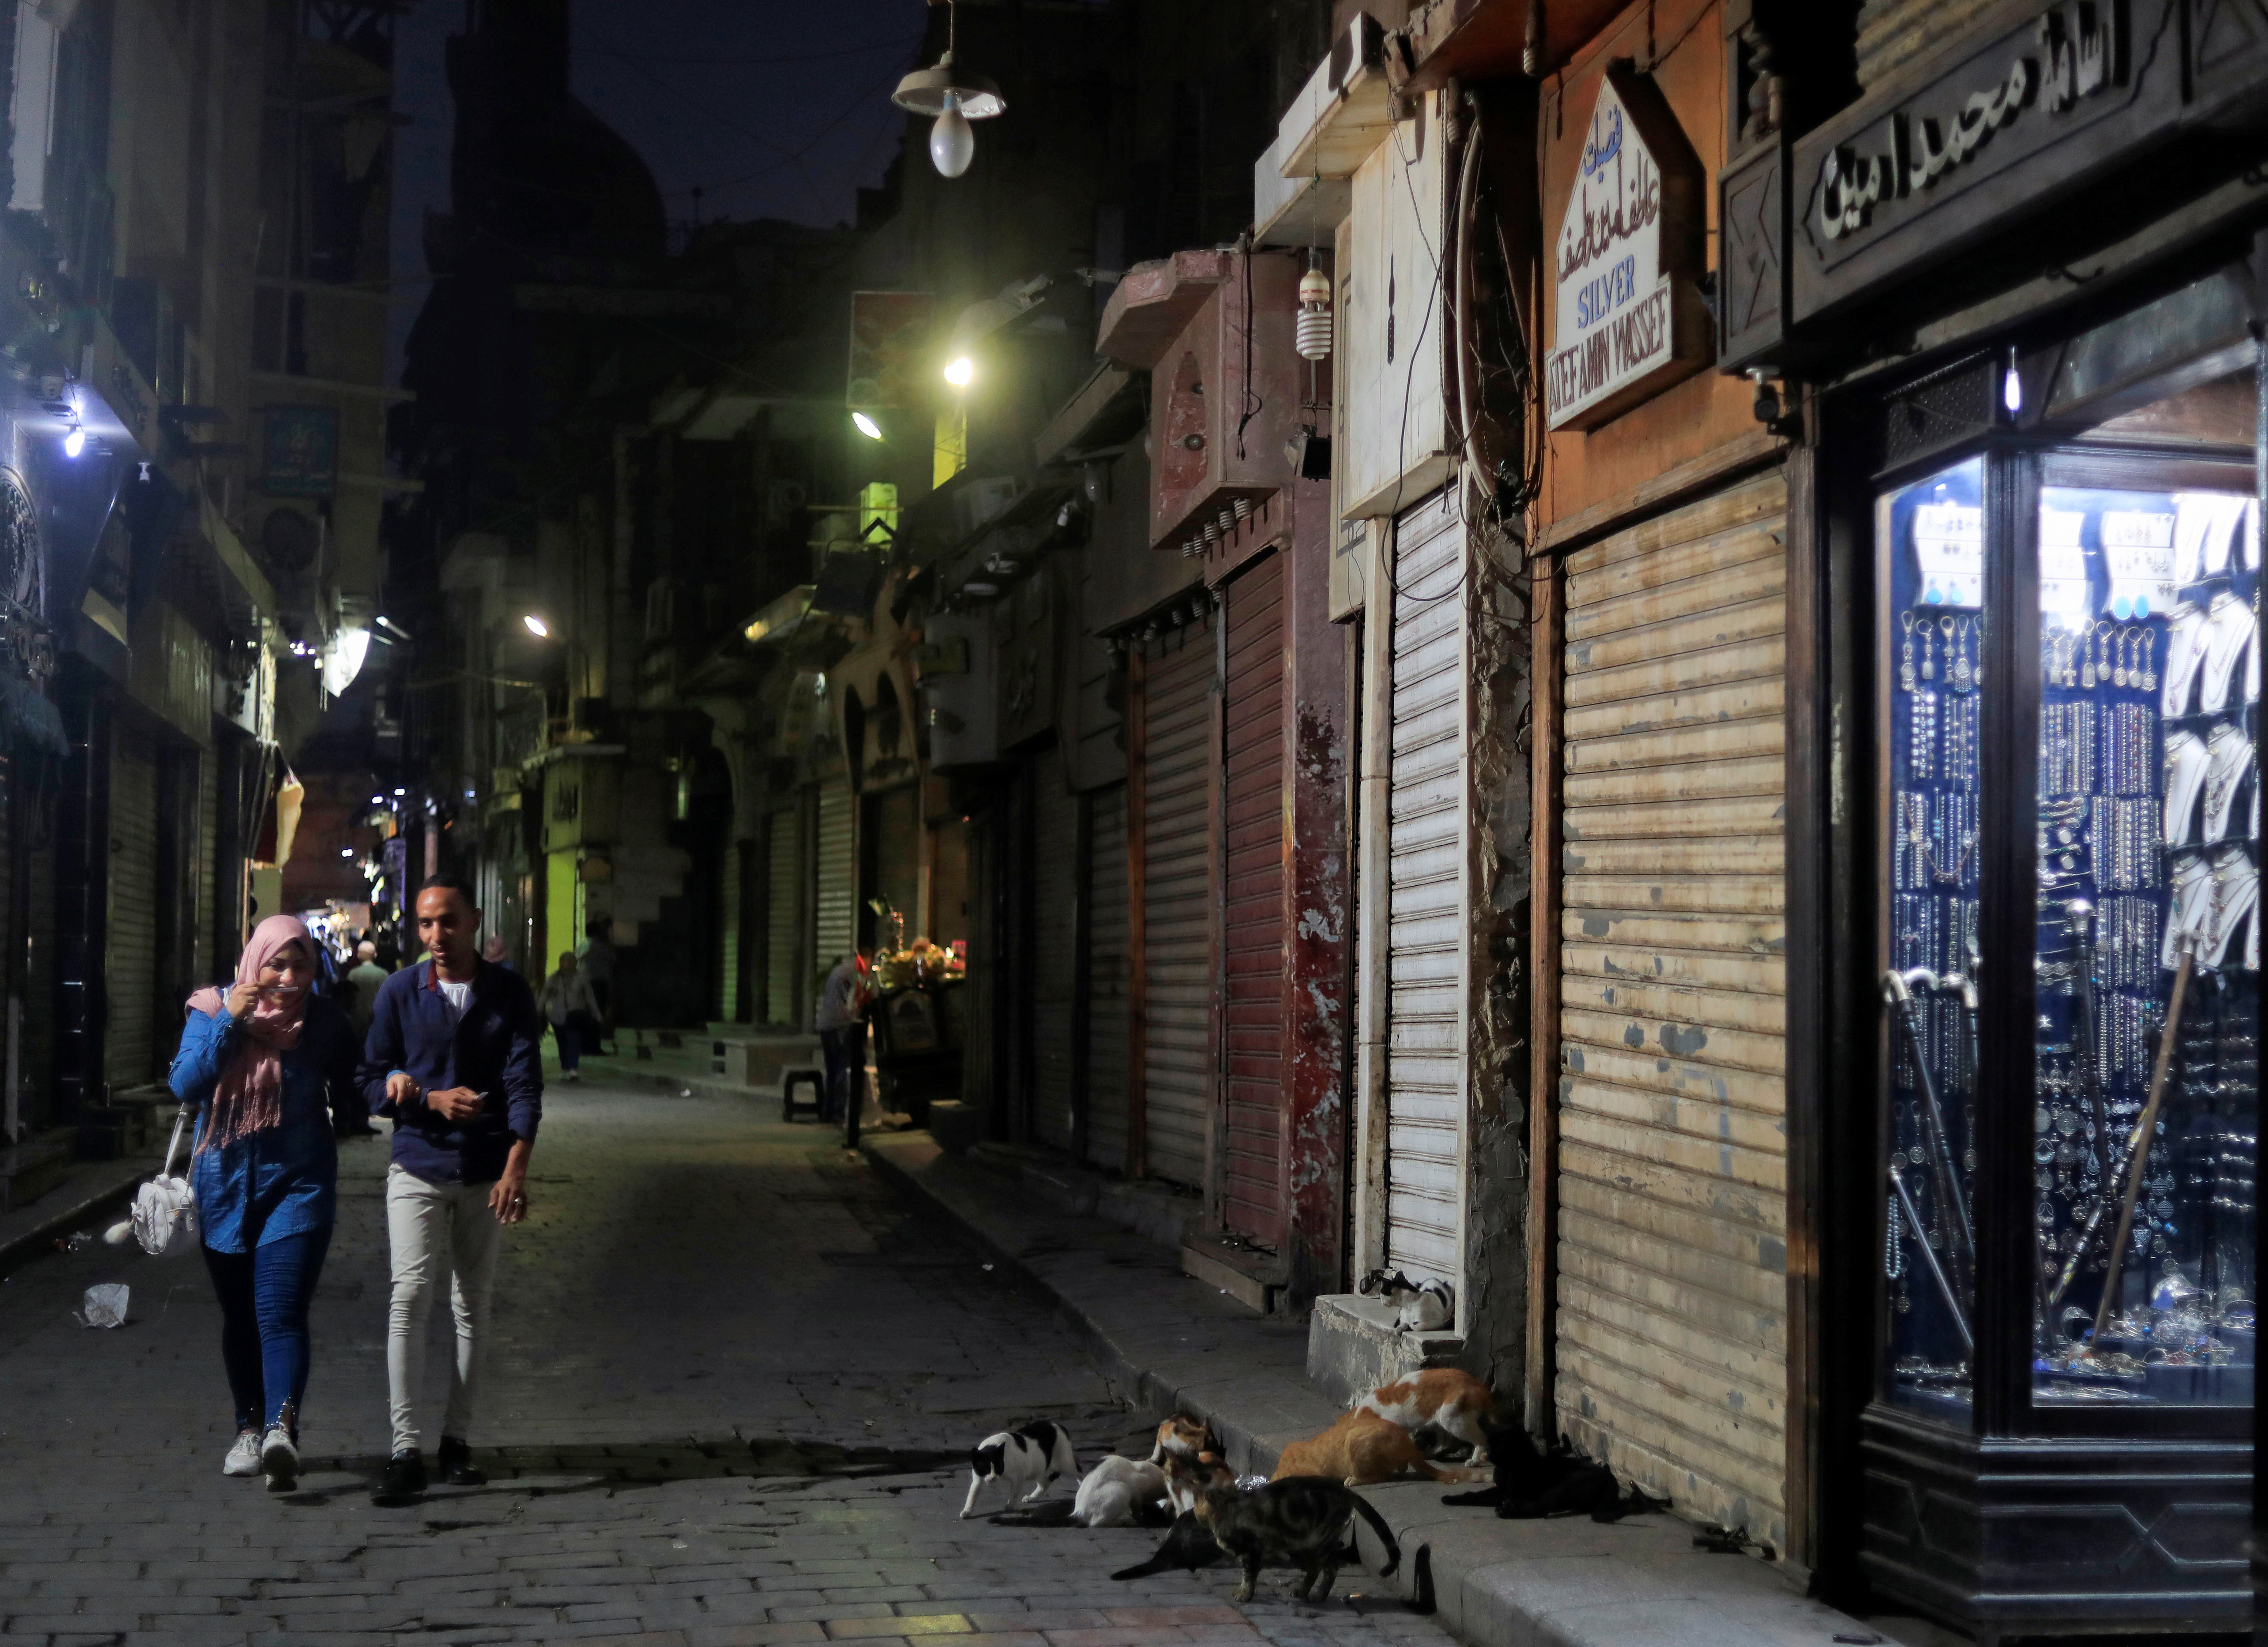 People walk past closed shops at the gold market street following the outbreak of the coronavirus disease (COVID-19), in old Cairo, Egypt July 26, 2020. Picture taken July 26, 2020. REUTERS/Amr Abdallah Dalsh - RC2O1I9EWBEJ